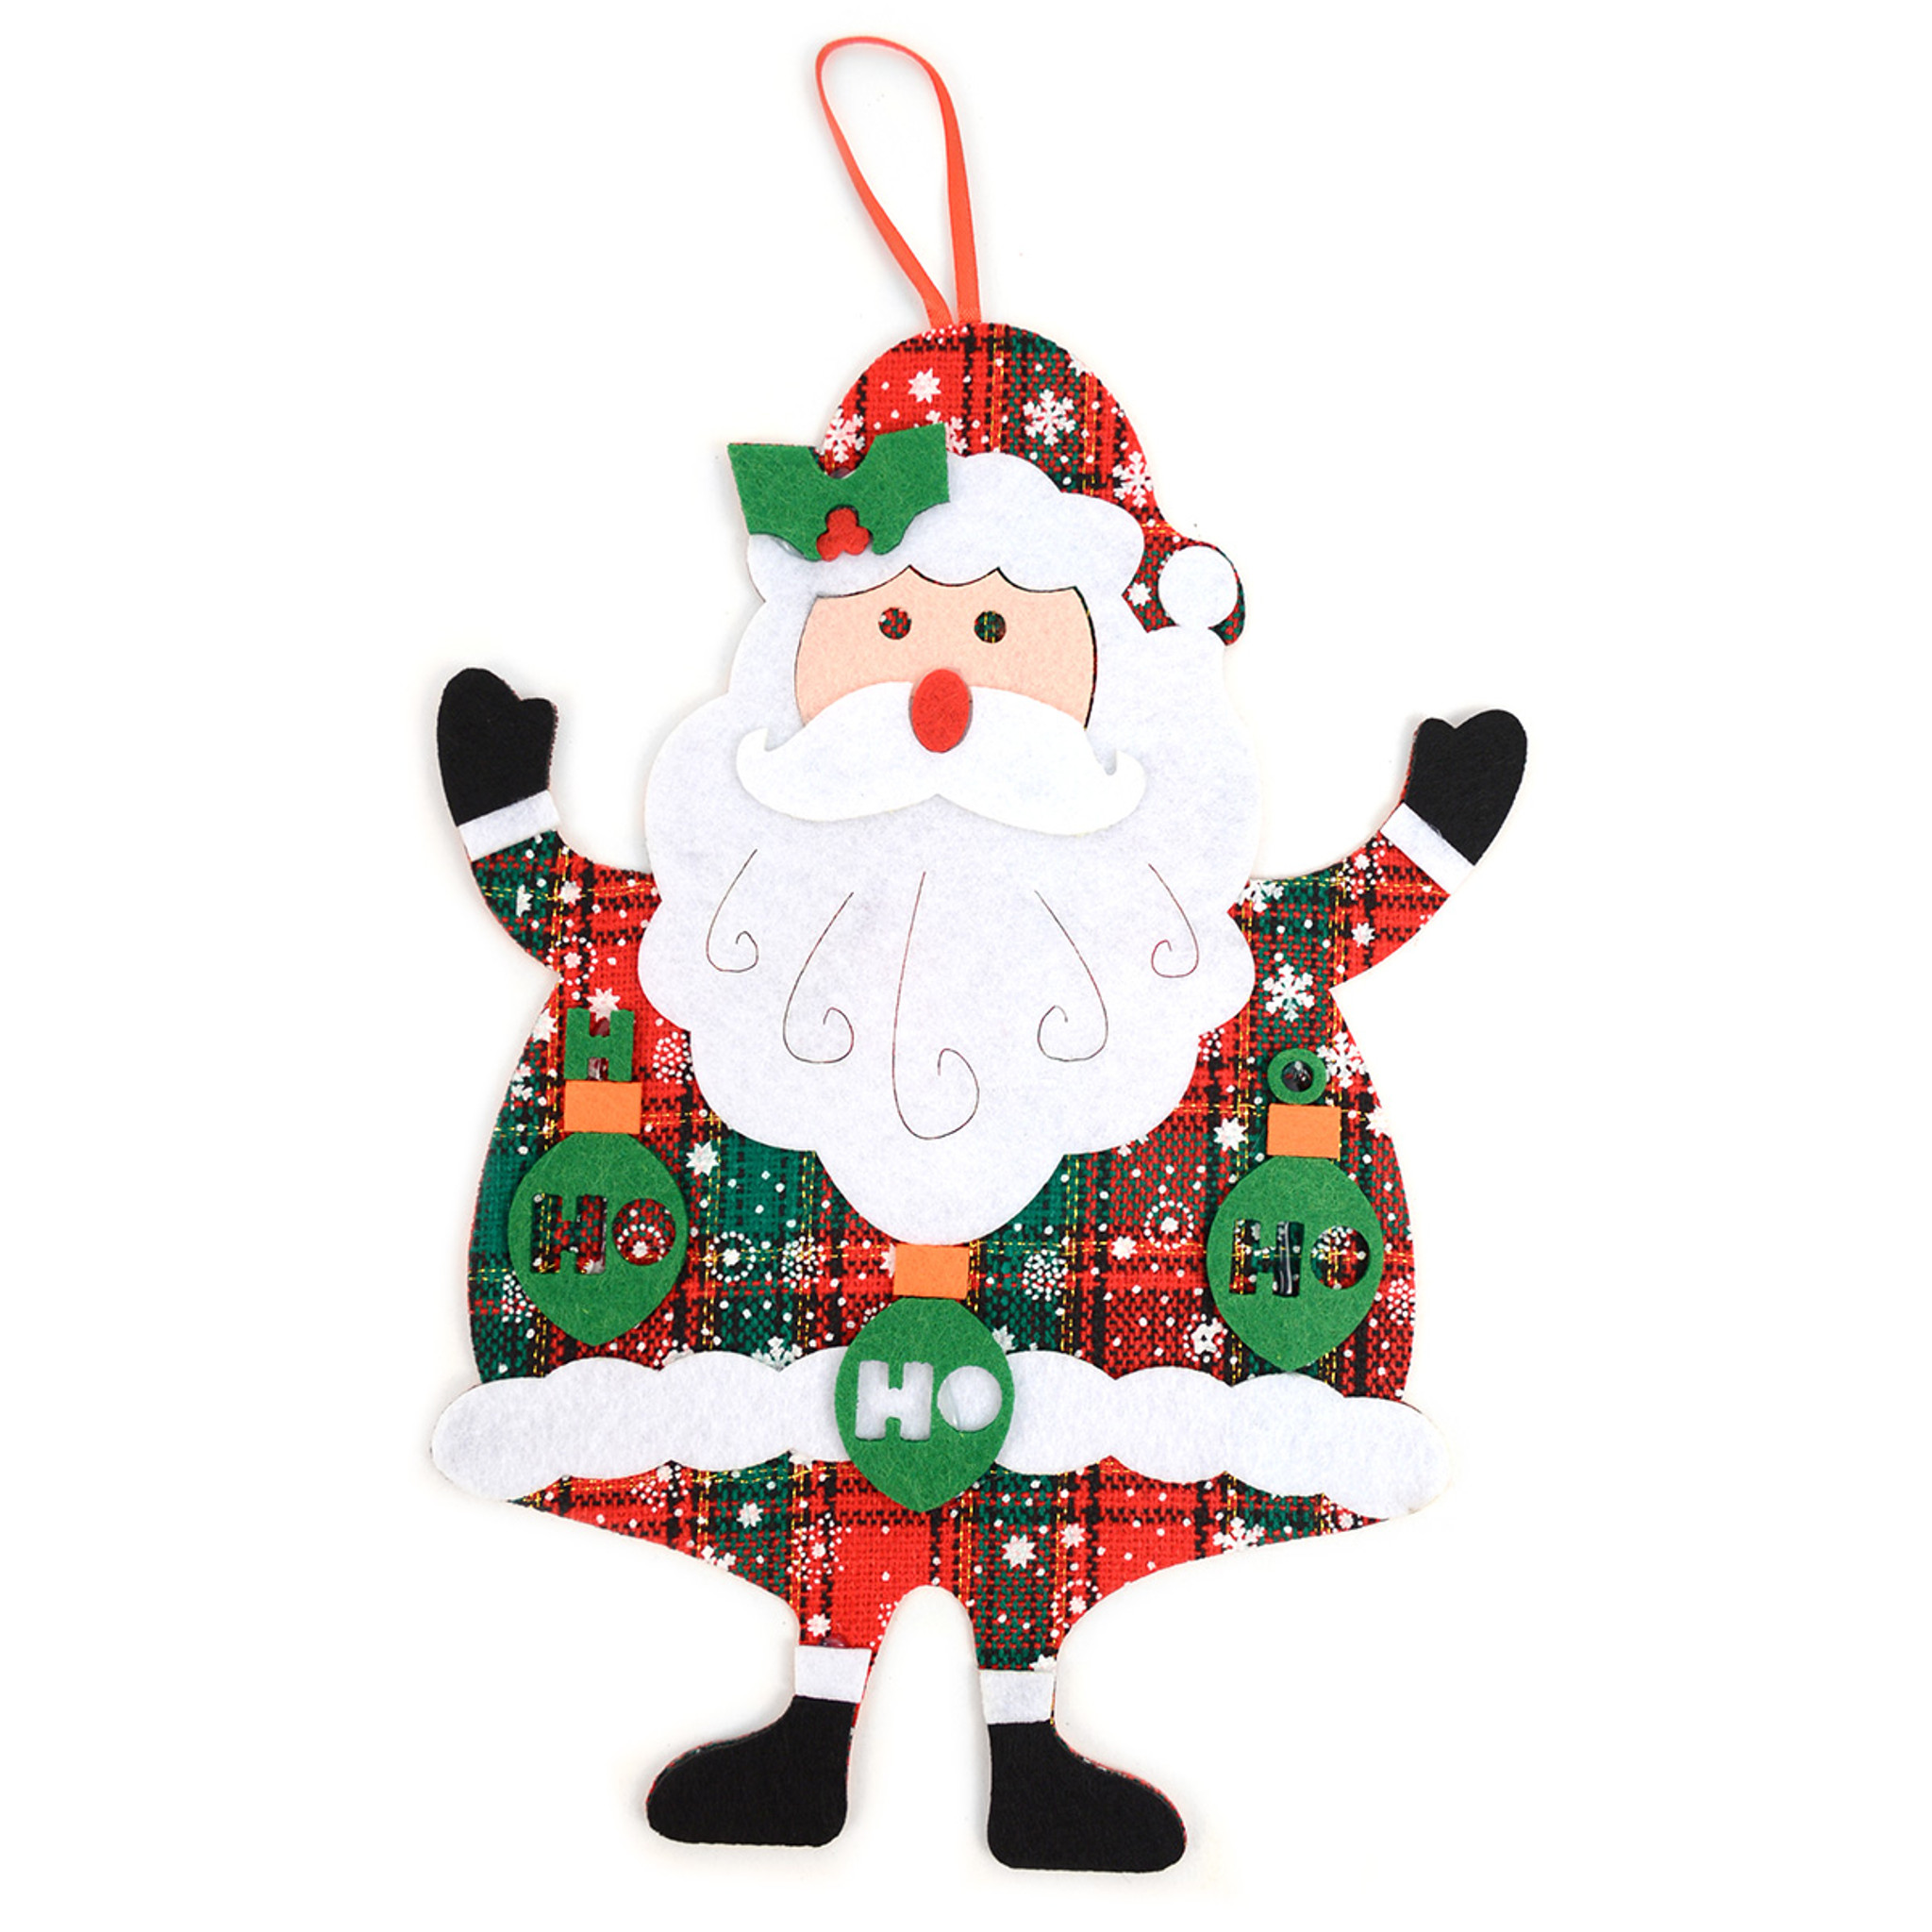 Felt Merry Christmas Red And Green Plaid Santa Claus Christmas Tree Ornament Hanging Wall Decor